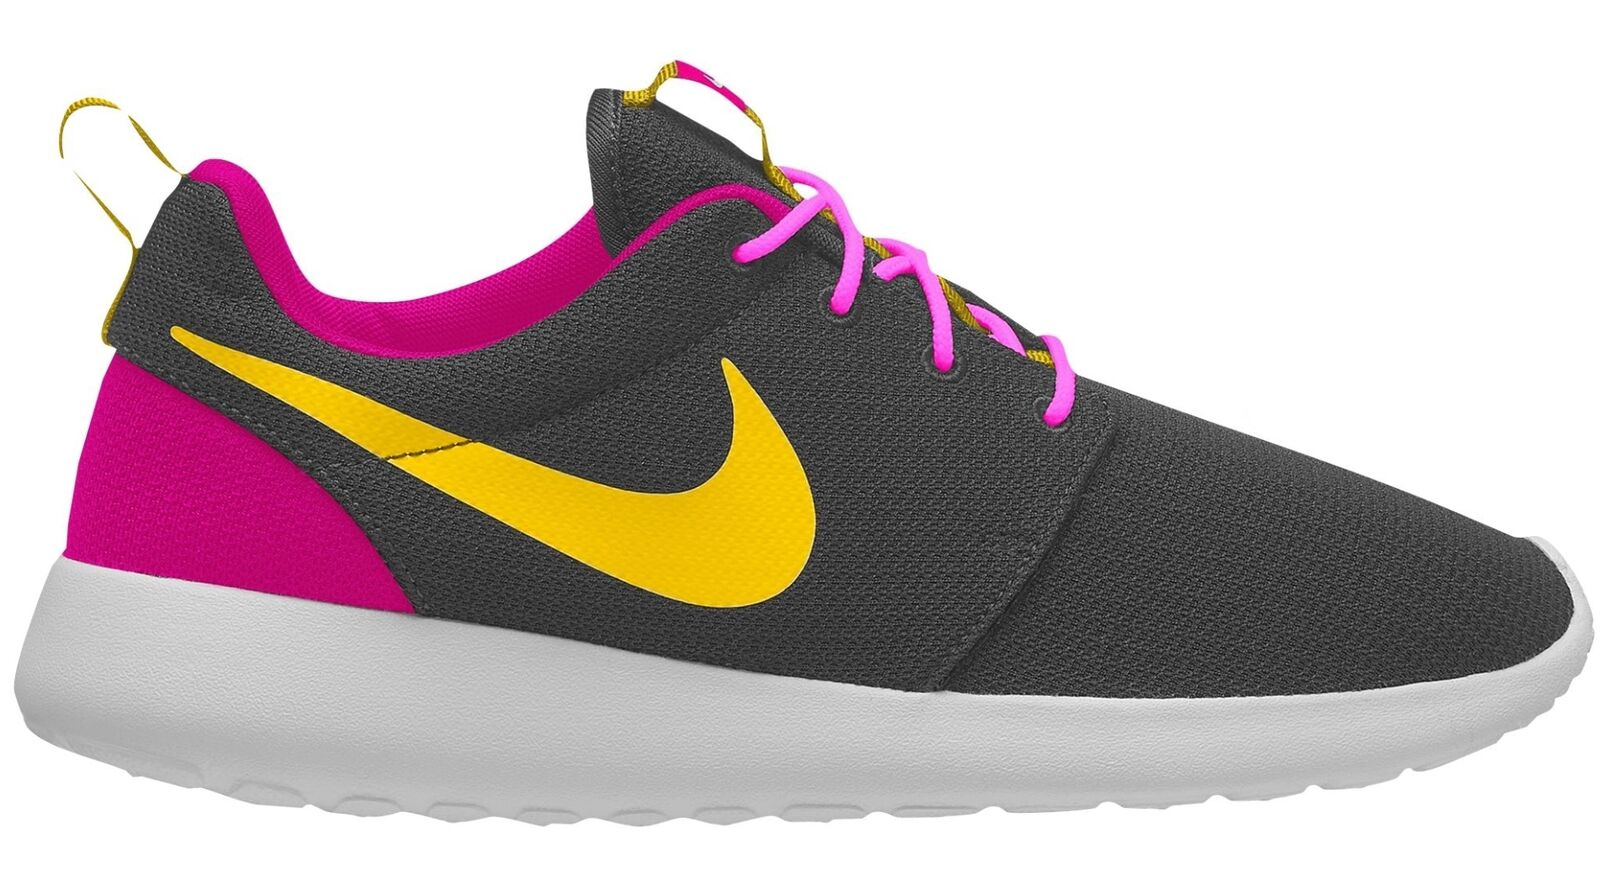 Nike Roshe One Mens 511881-035 Anthracite Magenta Yellow Running Shoes Size 9.5